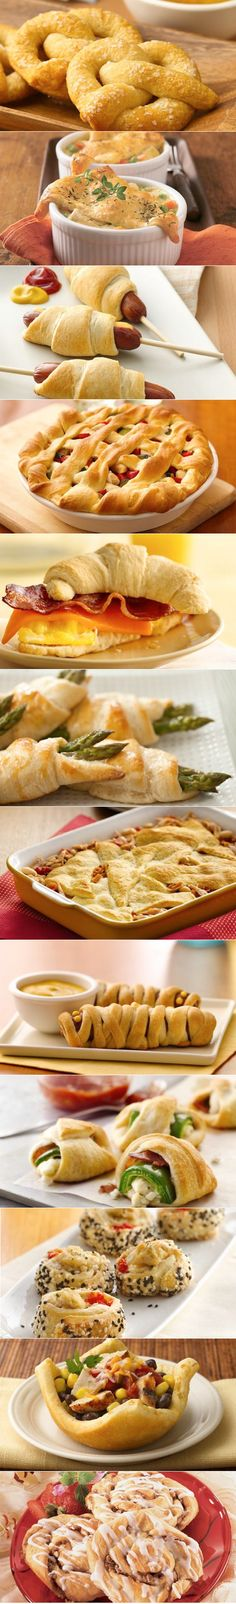 Cool Crescent Roll Recipes